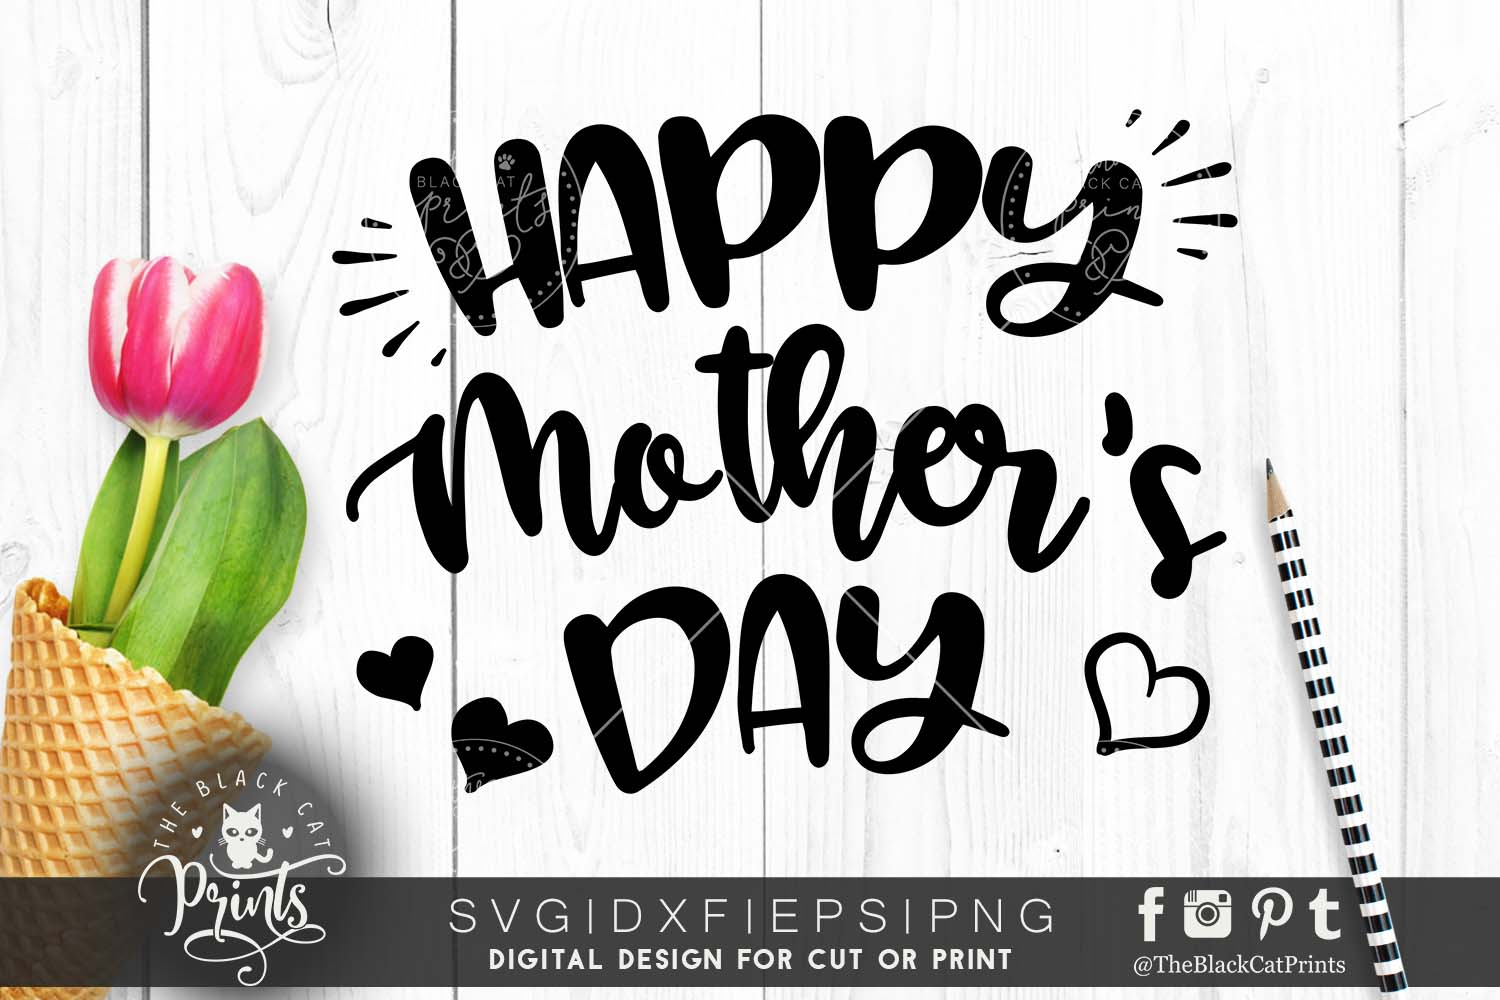 Happy mother's day SVG PNG EPS DXF, Mother svg cutting file example image 1